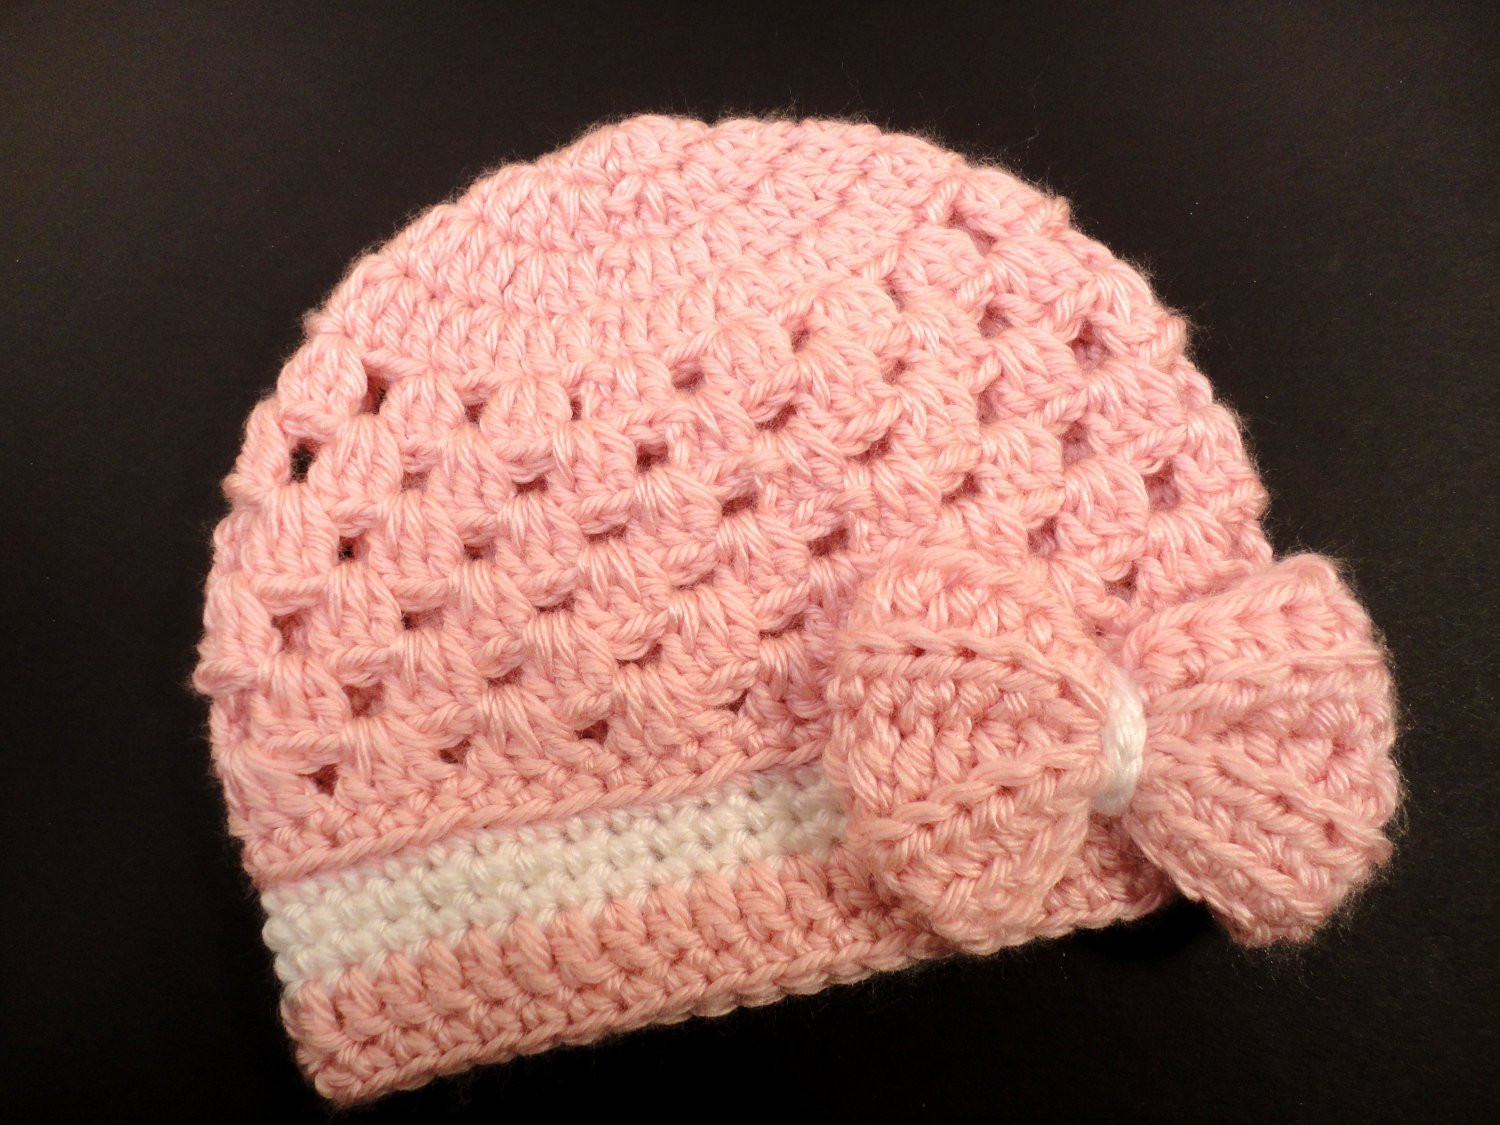 Crochet for Baby Girl Awesome Crochet Baby Hat Pattern Newborn to 3 Years Baby Girl Hat Of Top 41 Pics Crochet for Baby Girl